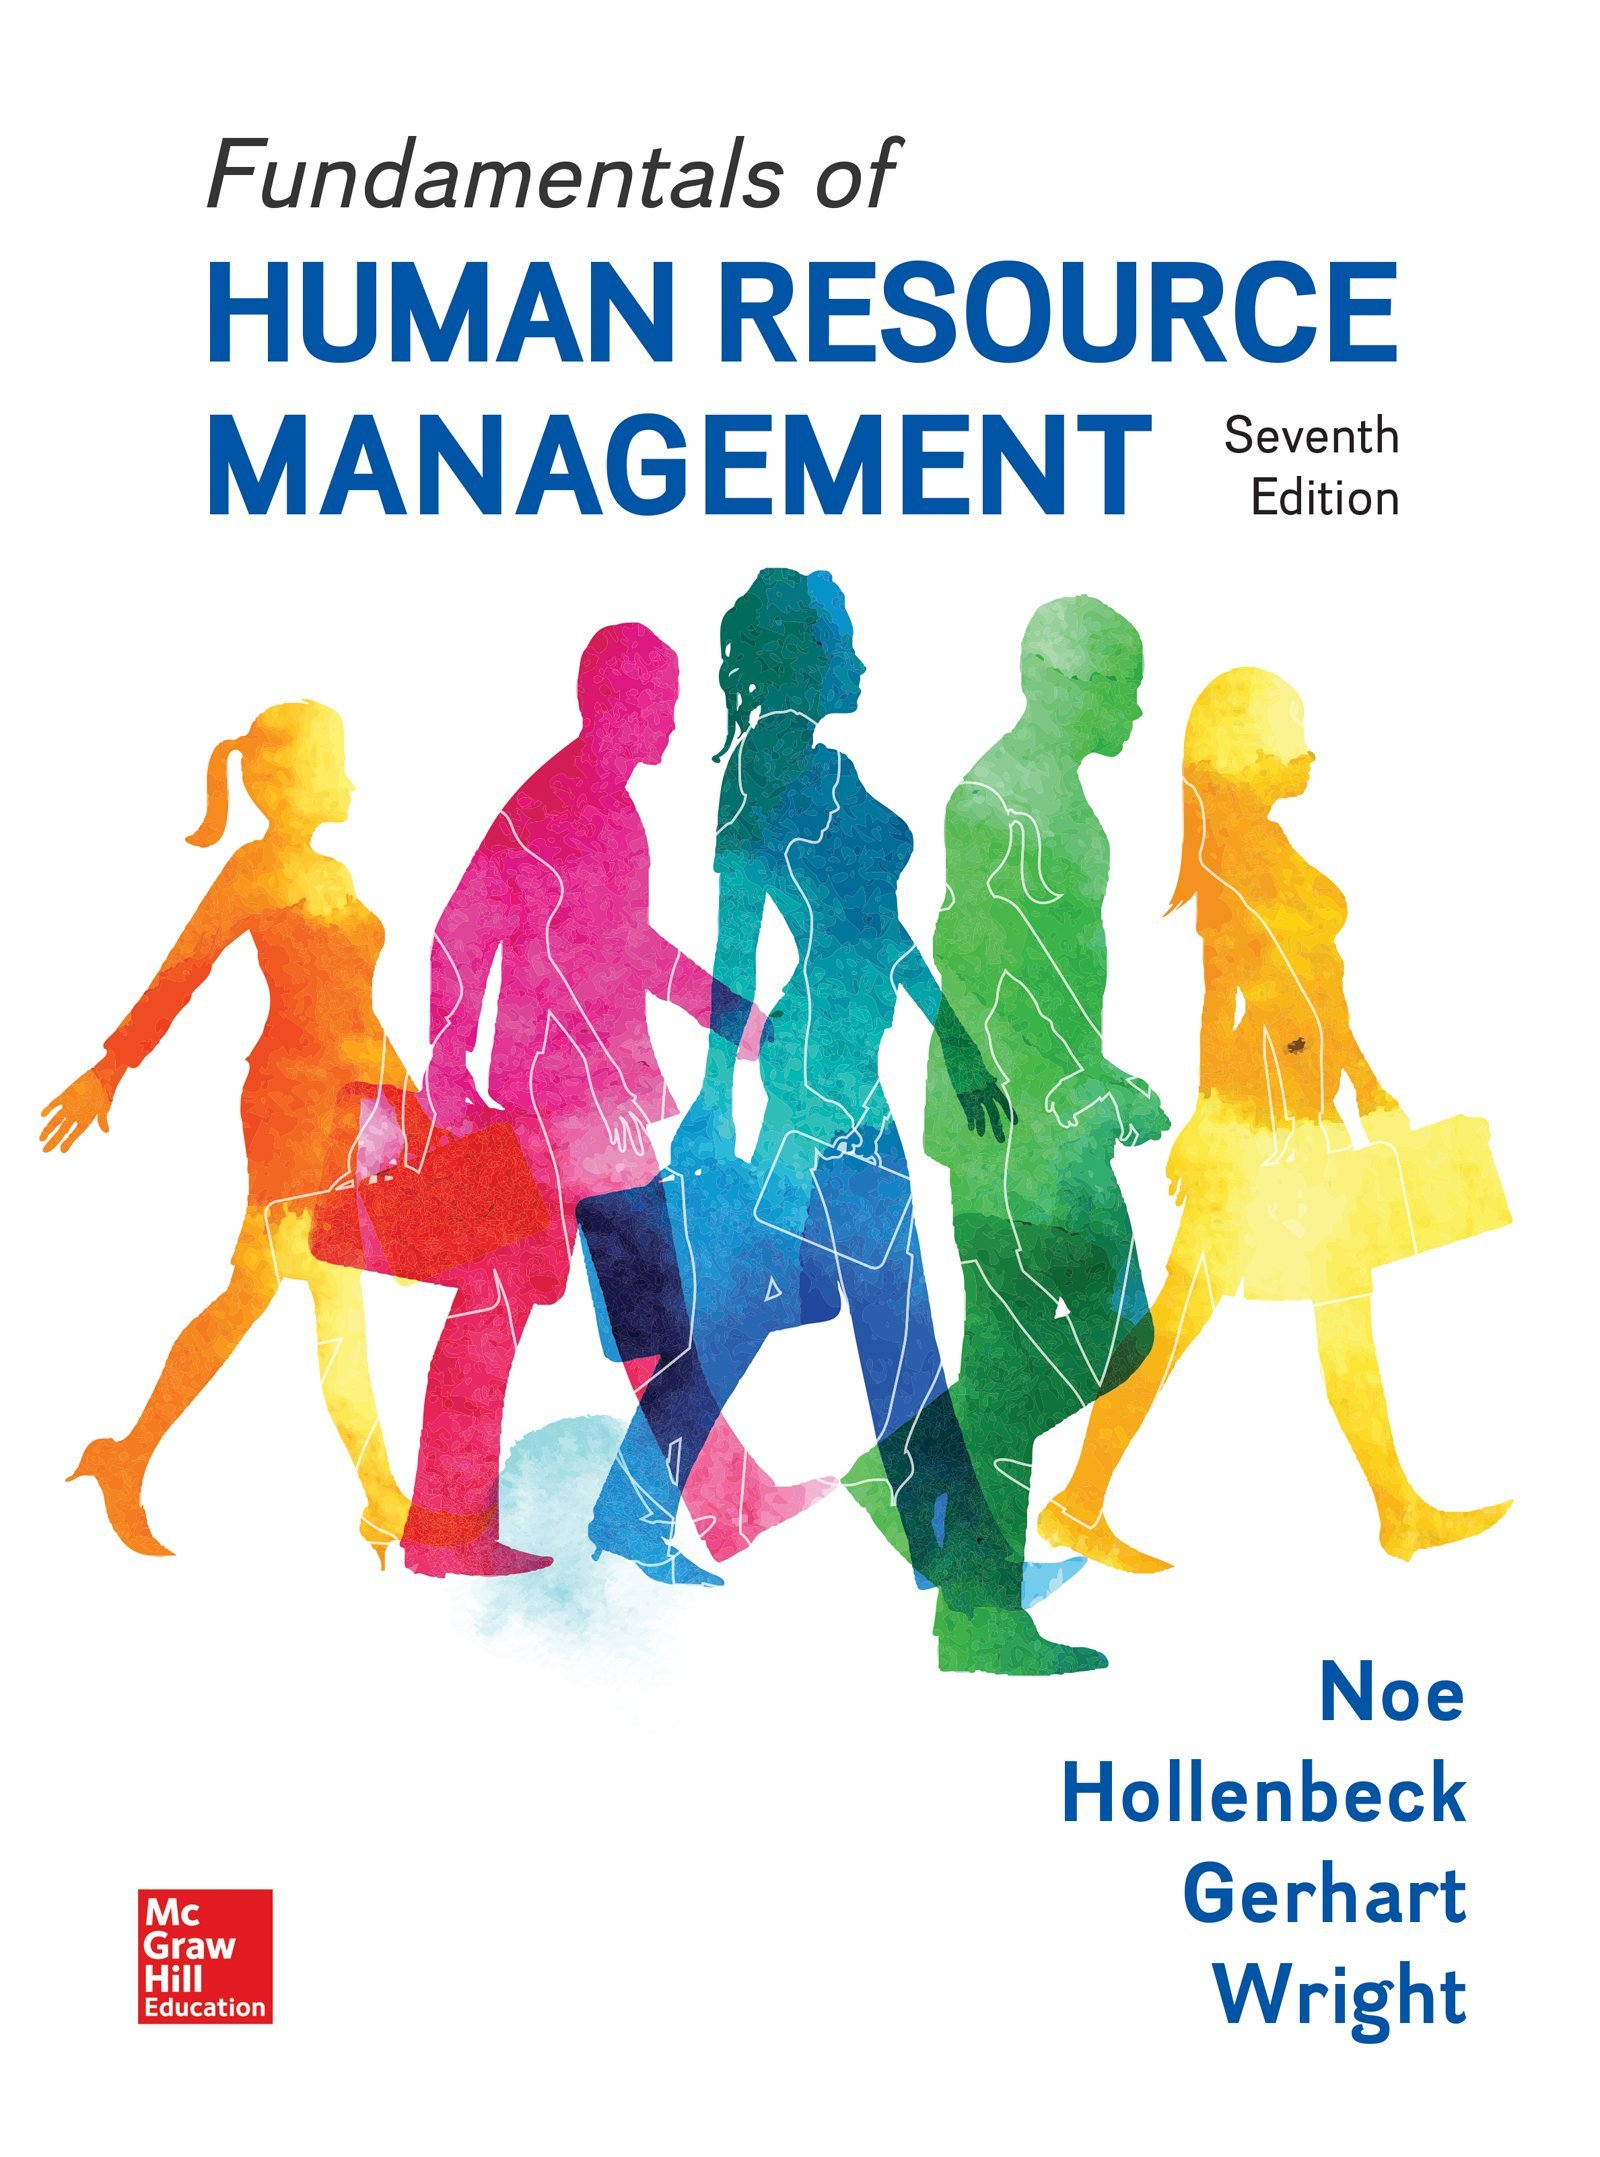 Fundamentals of Human Resource Management by McGraw-Hill Education